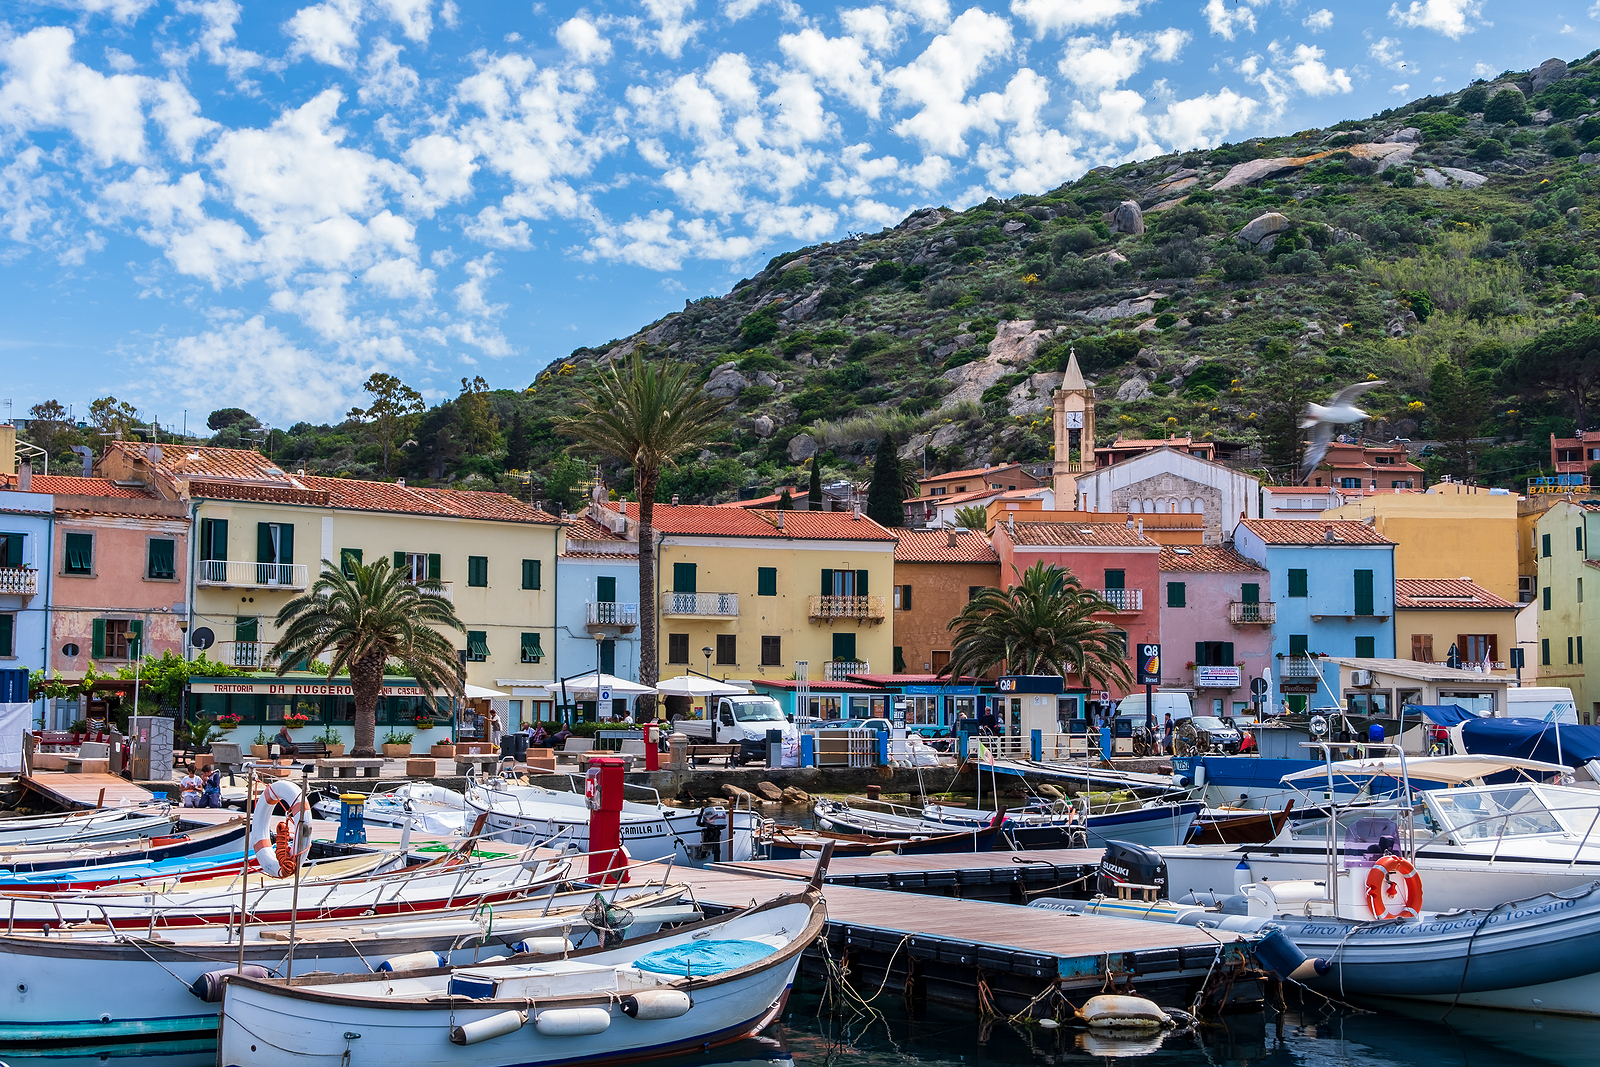 Giglio Island Port and Village, Italy njcharters.com